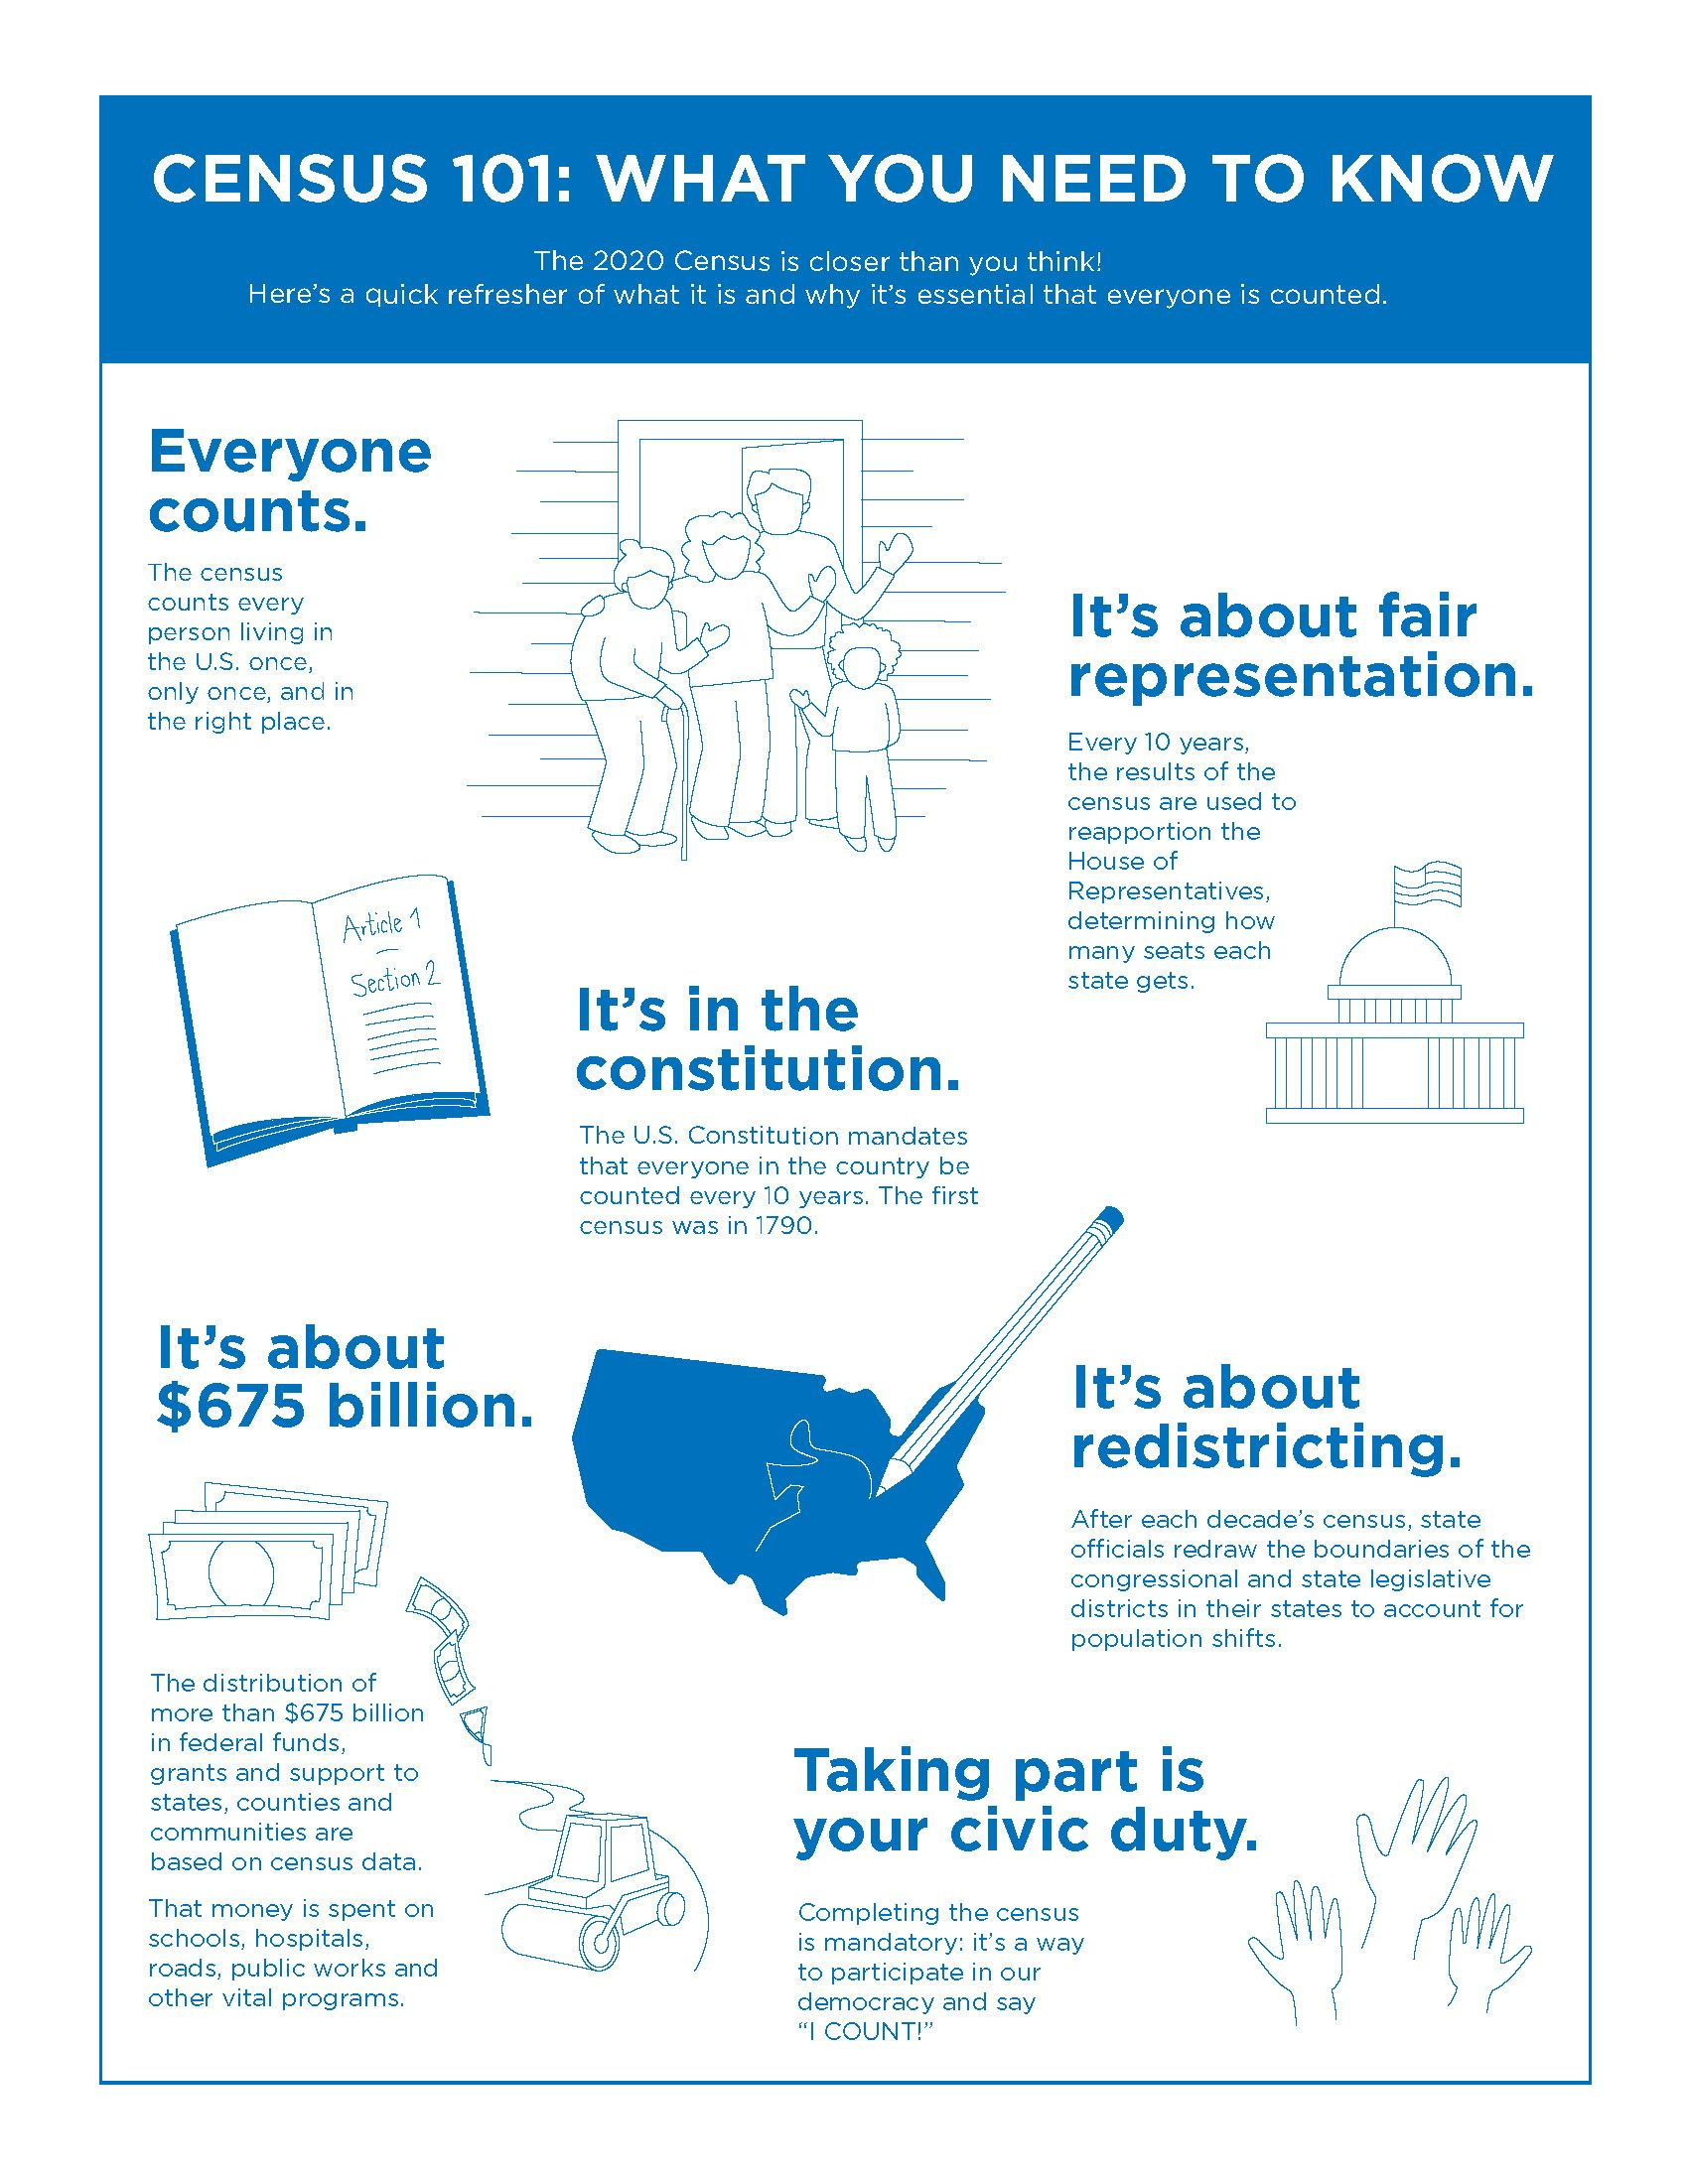 Census 101 graphic